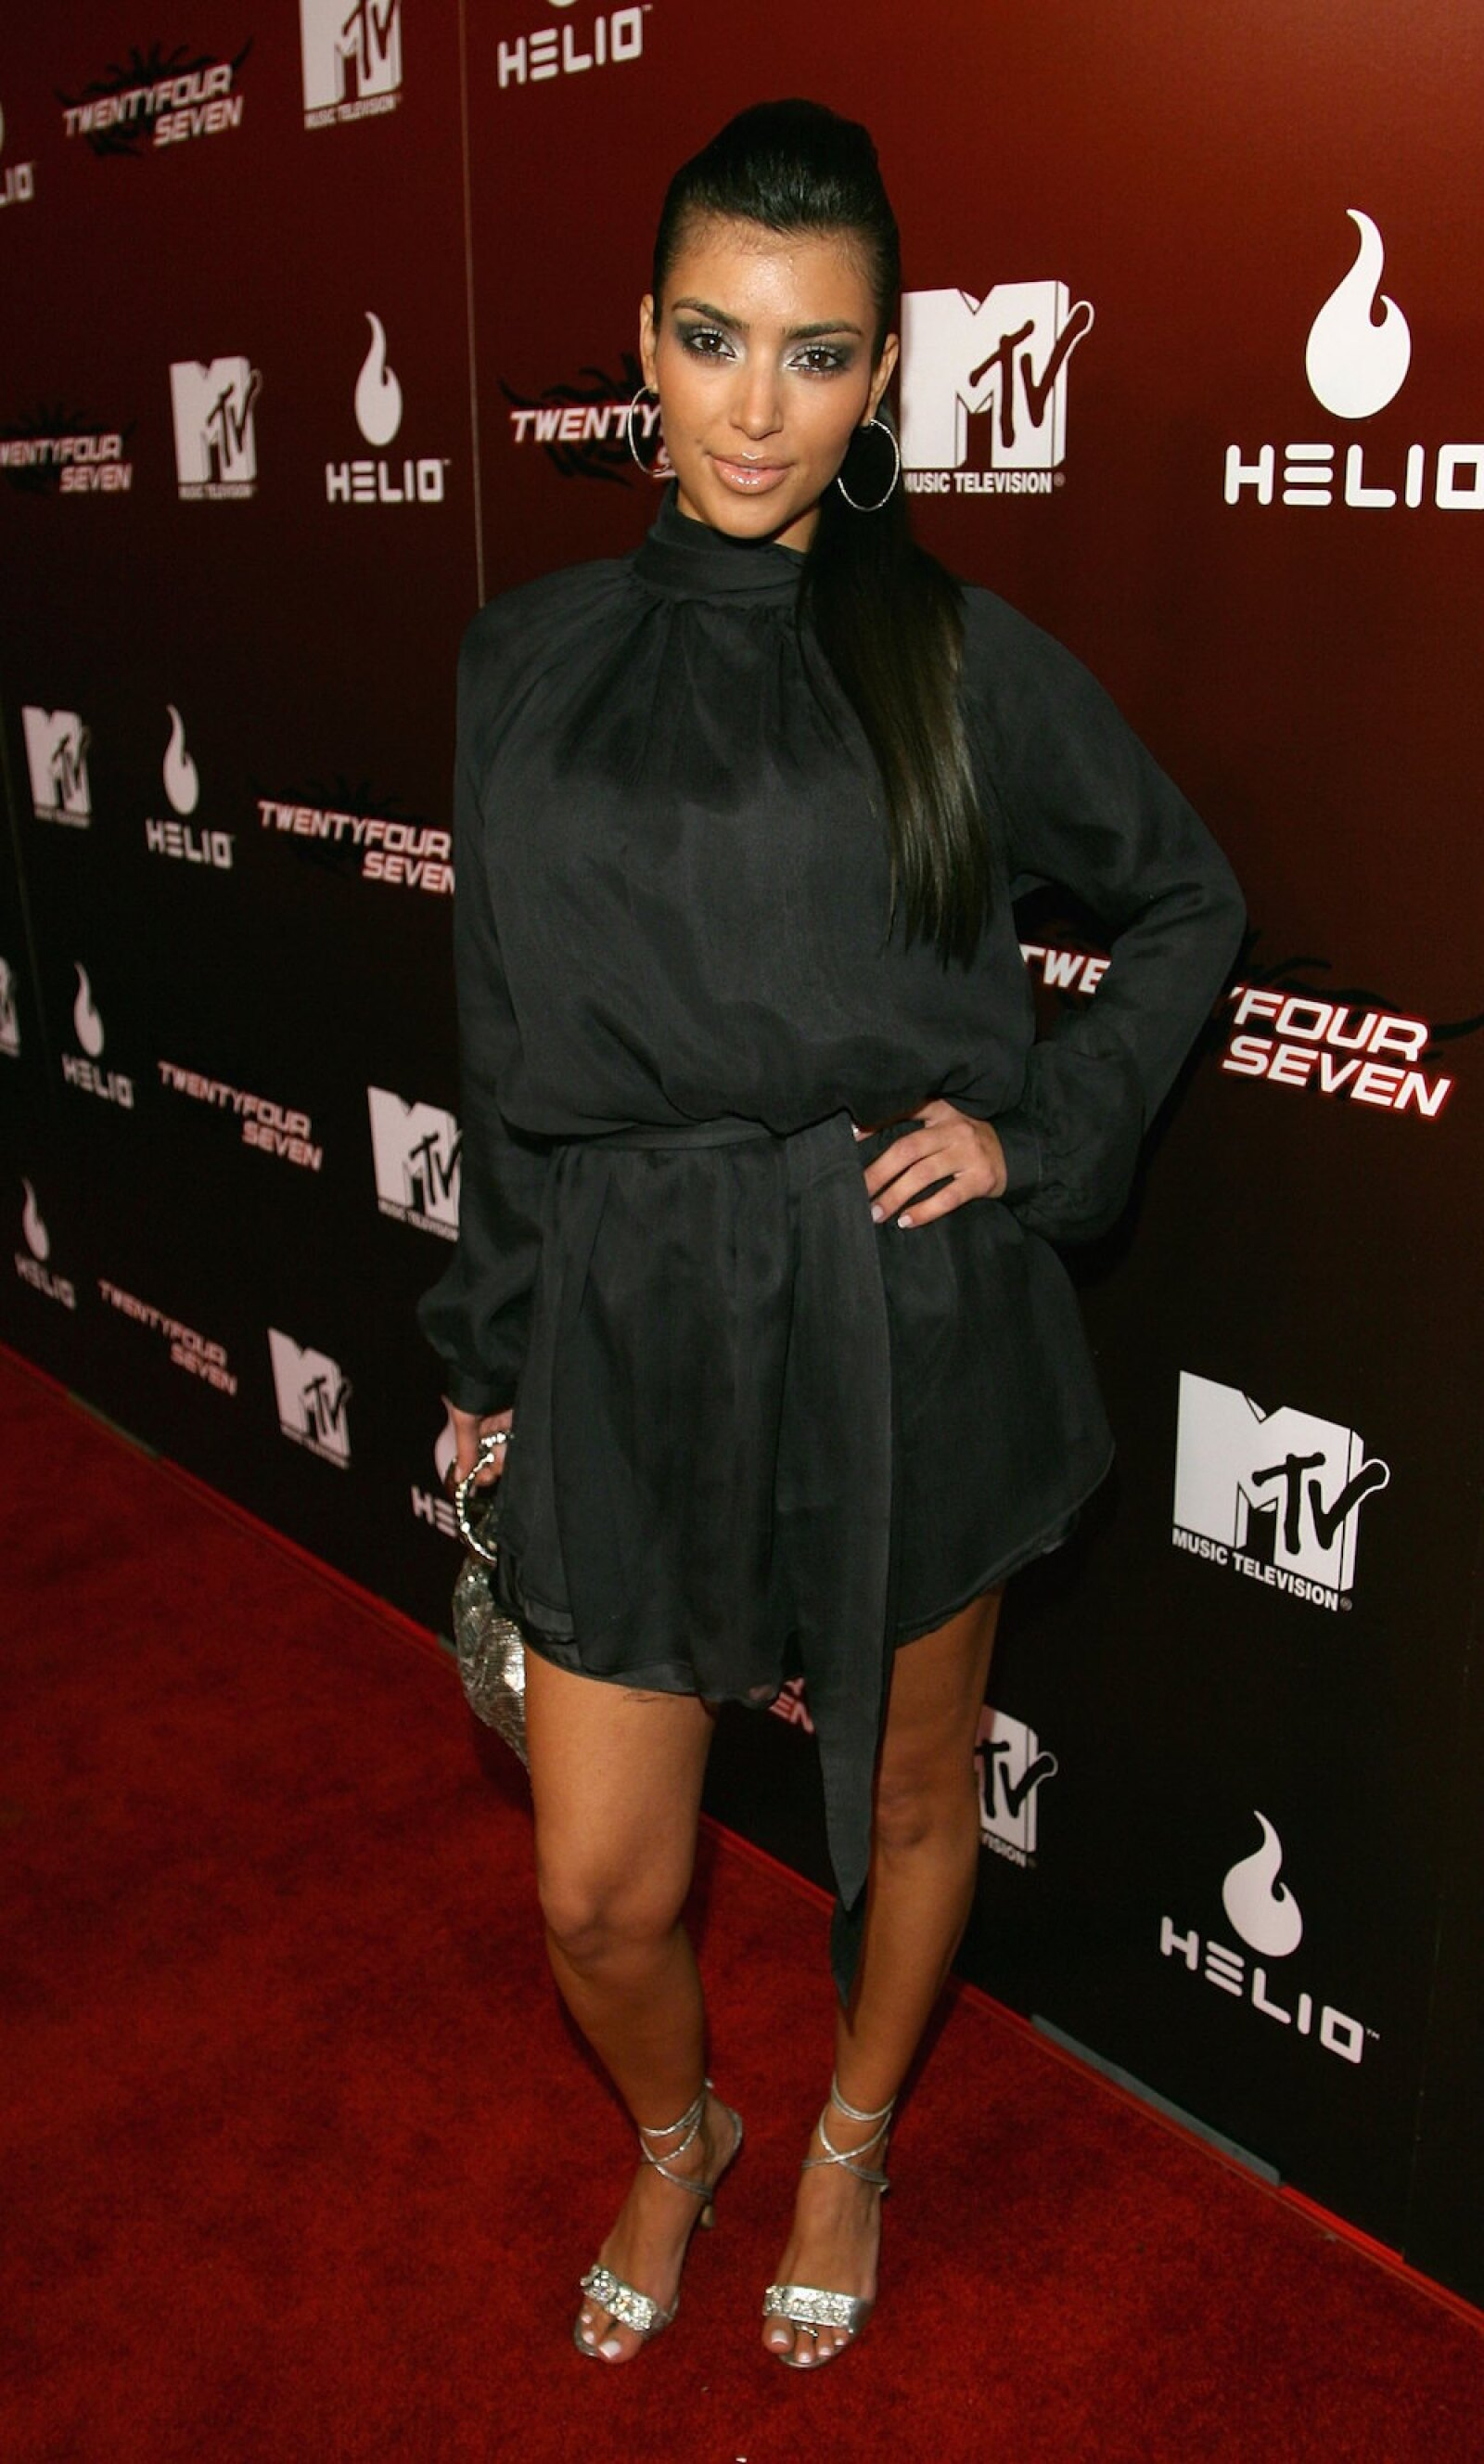 Kick Off Party for MTV's Twentyfourseven - Arrivals